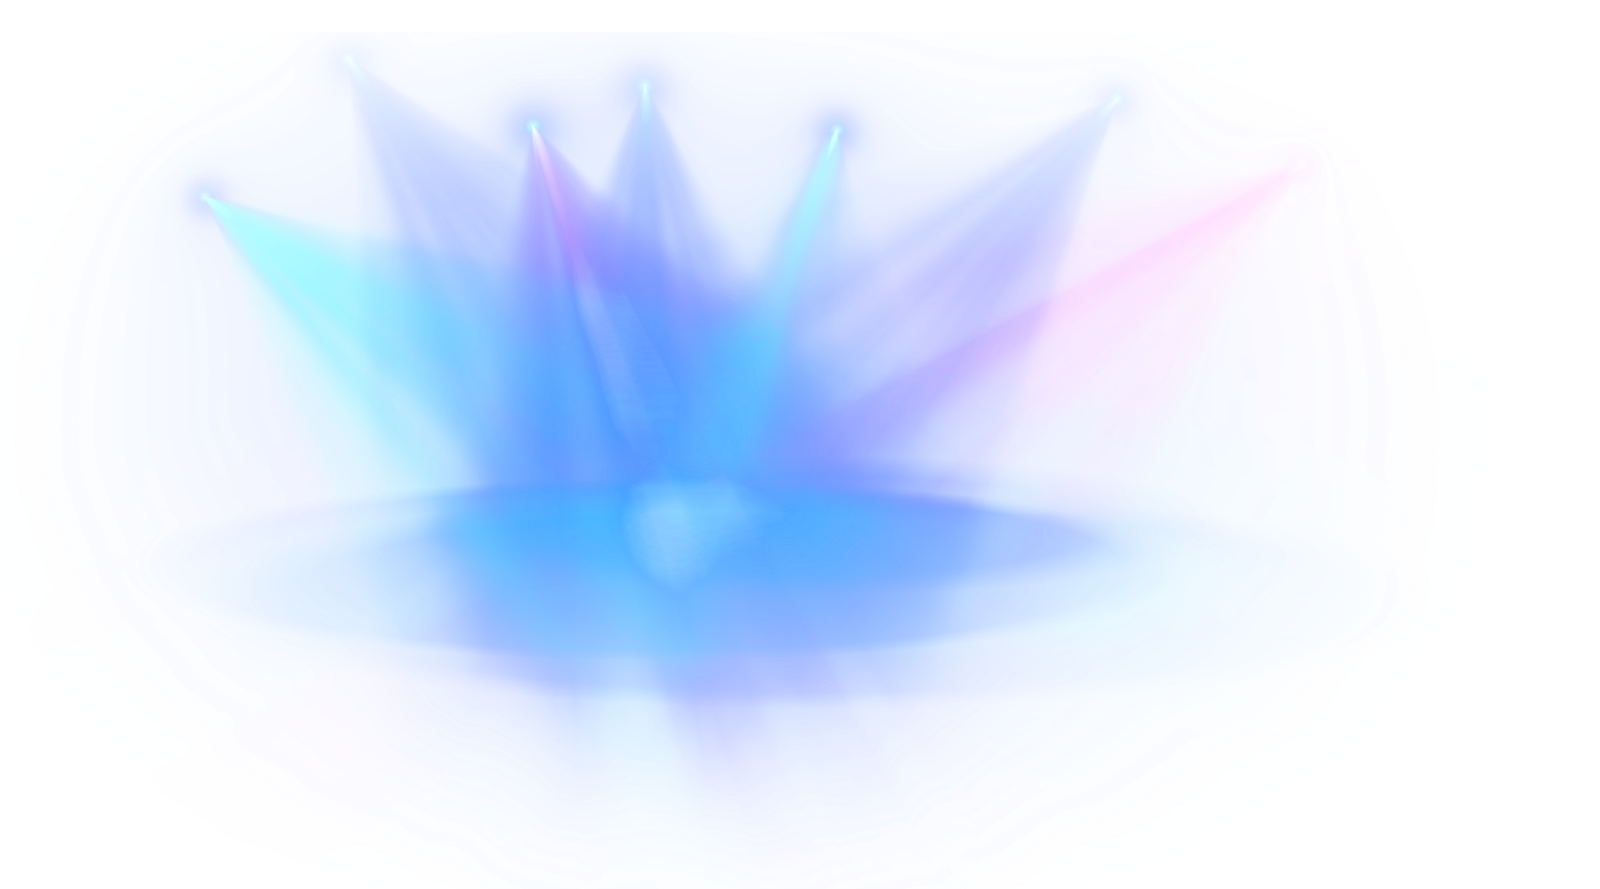 All New Lens Flare Png PnG Effects | PNG WORLD